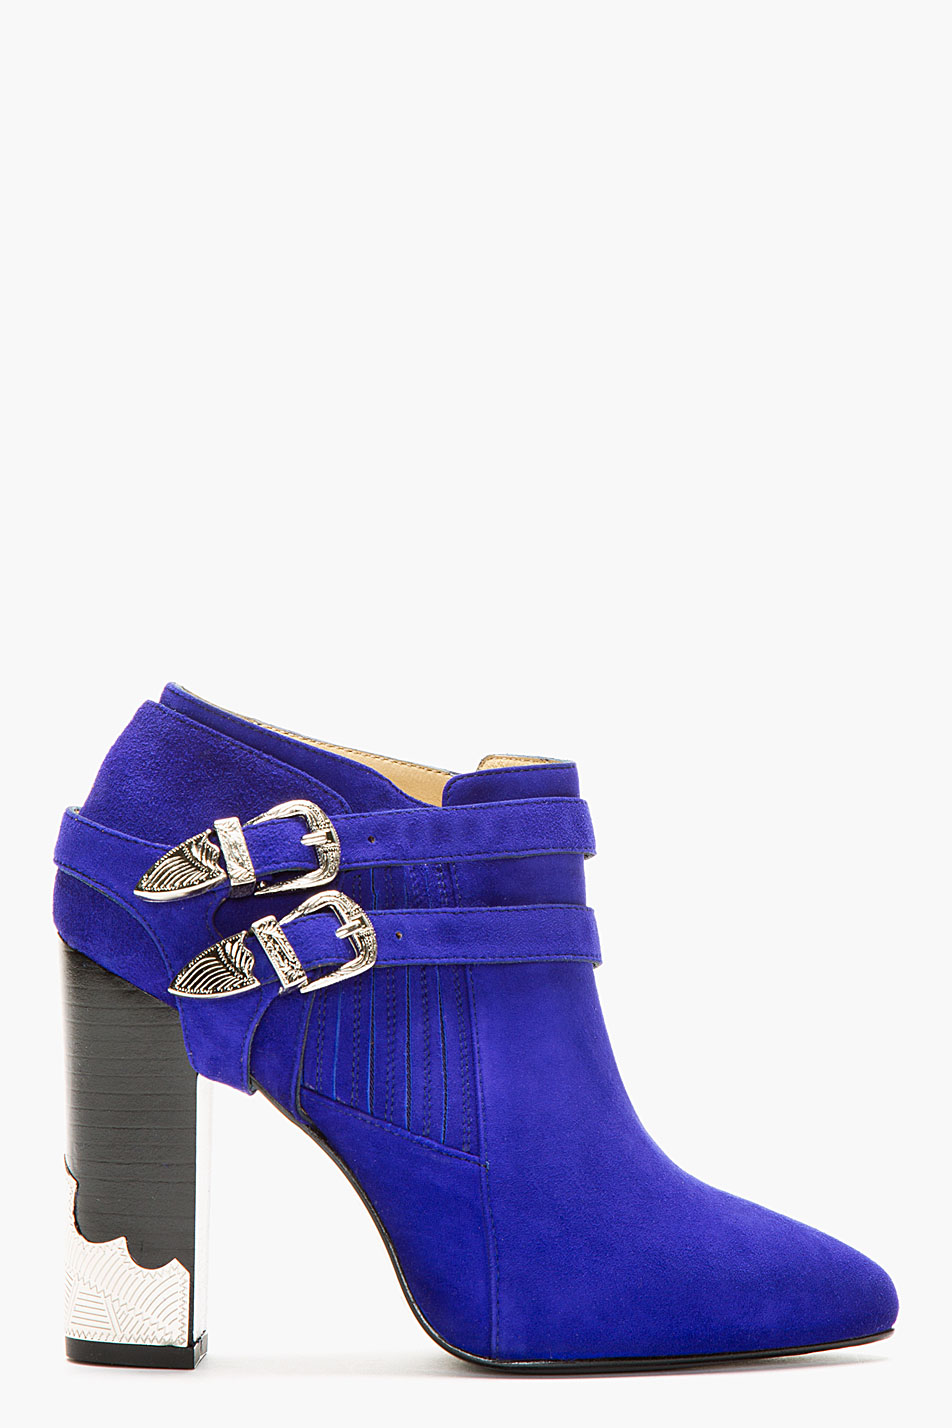 Toga pulla blue suede western buckle ankle boots